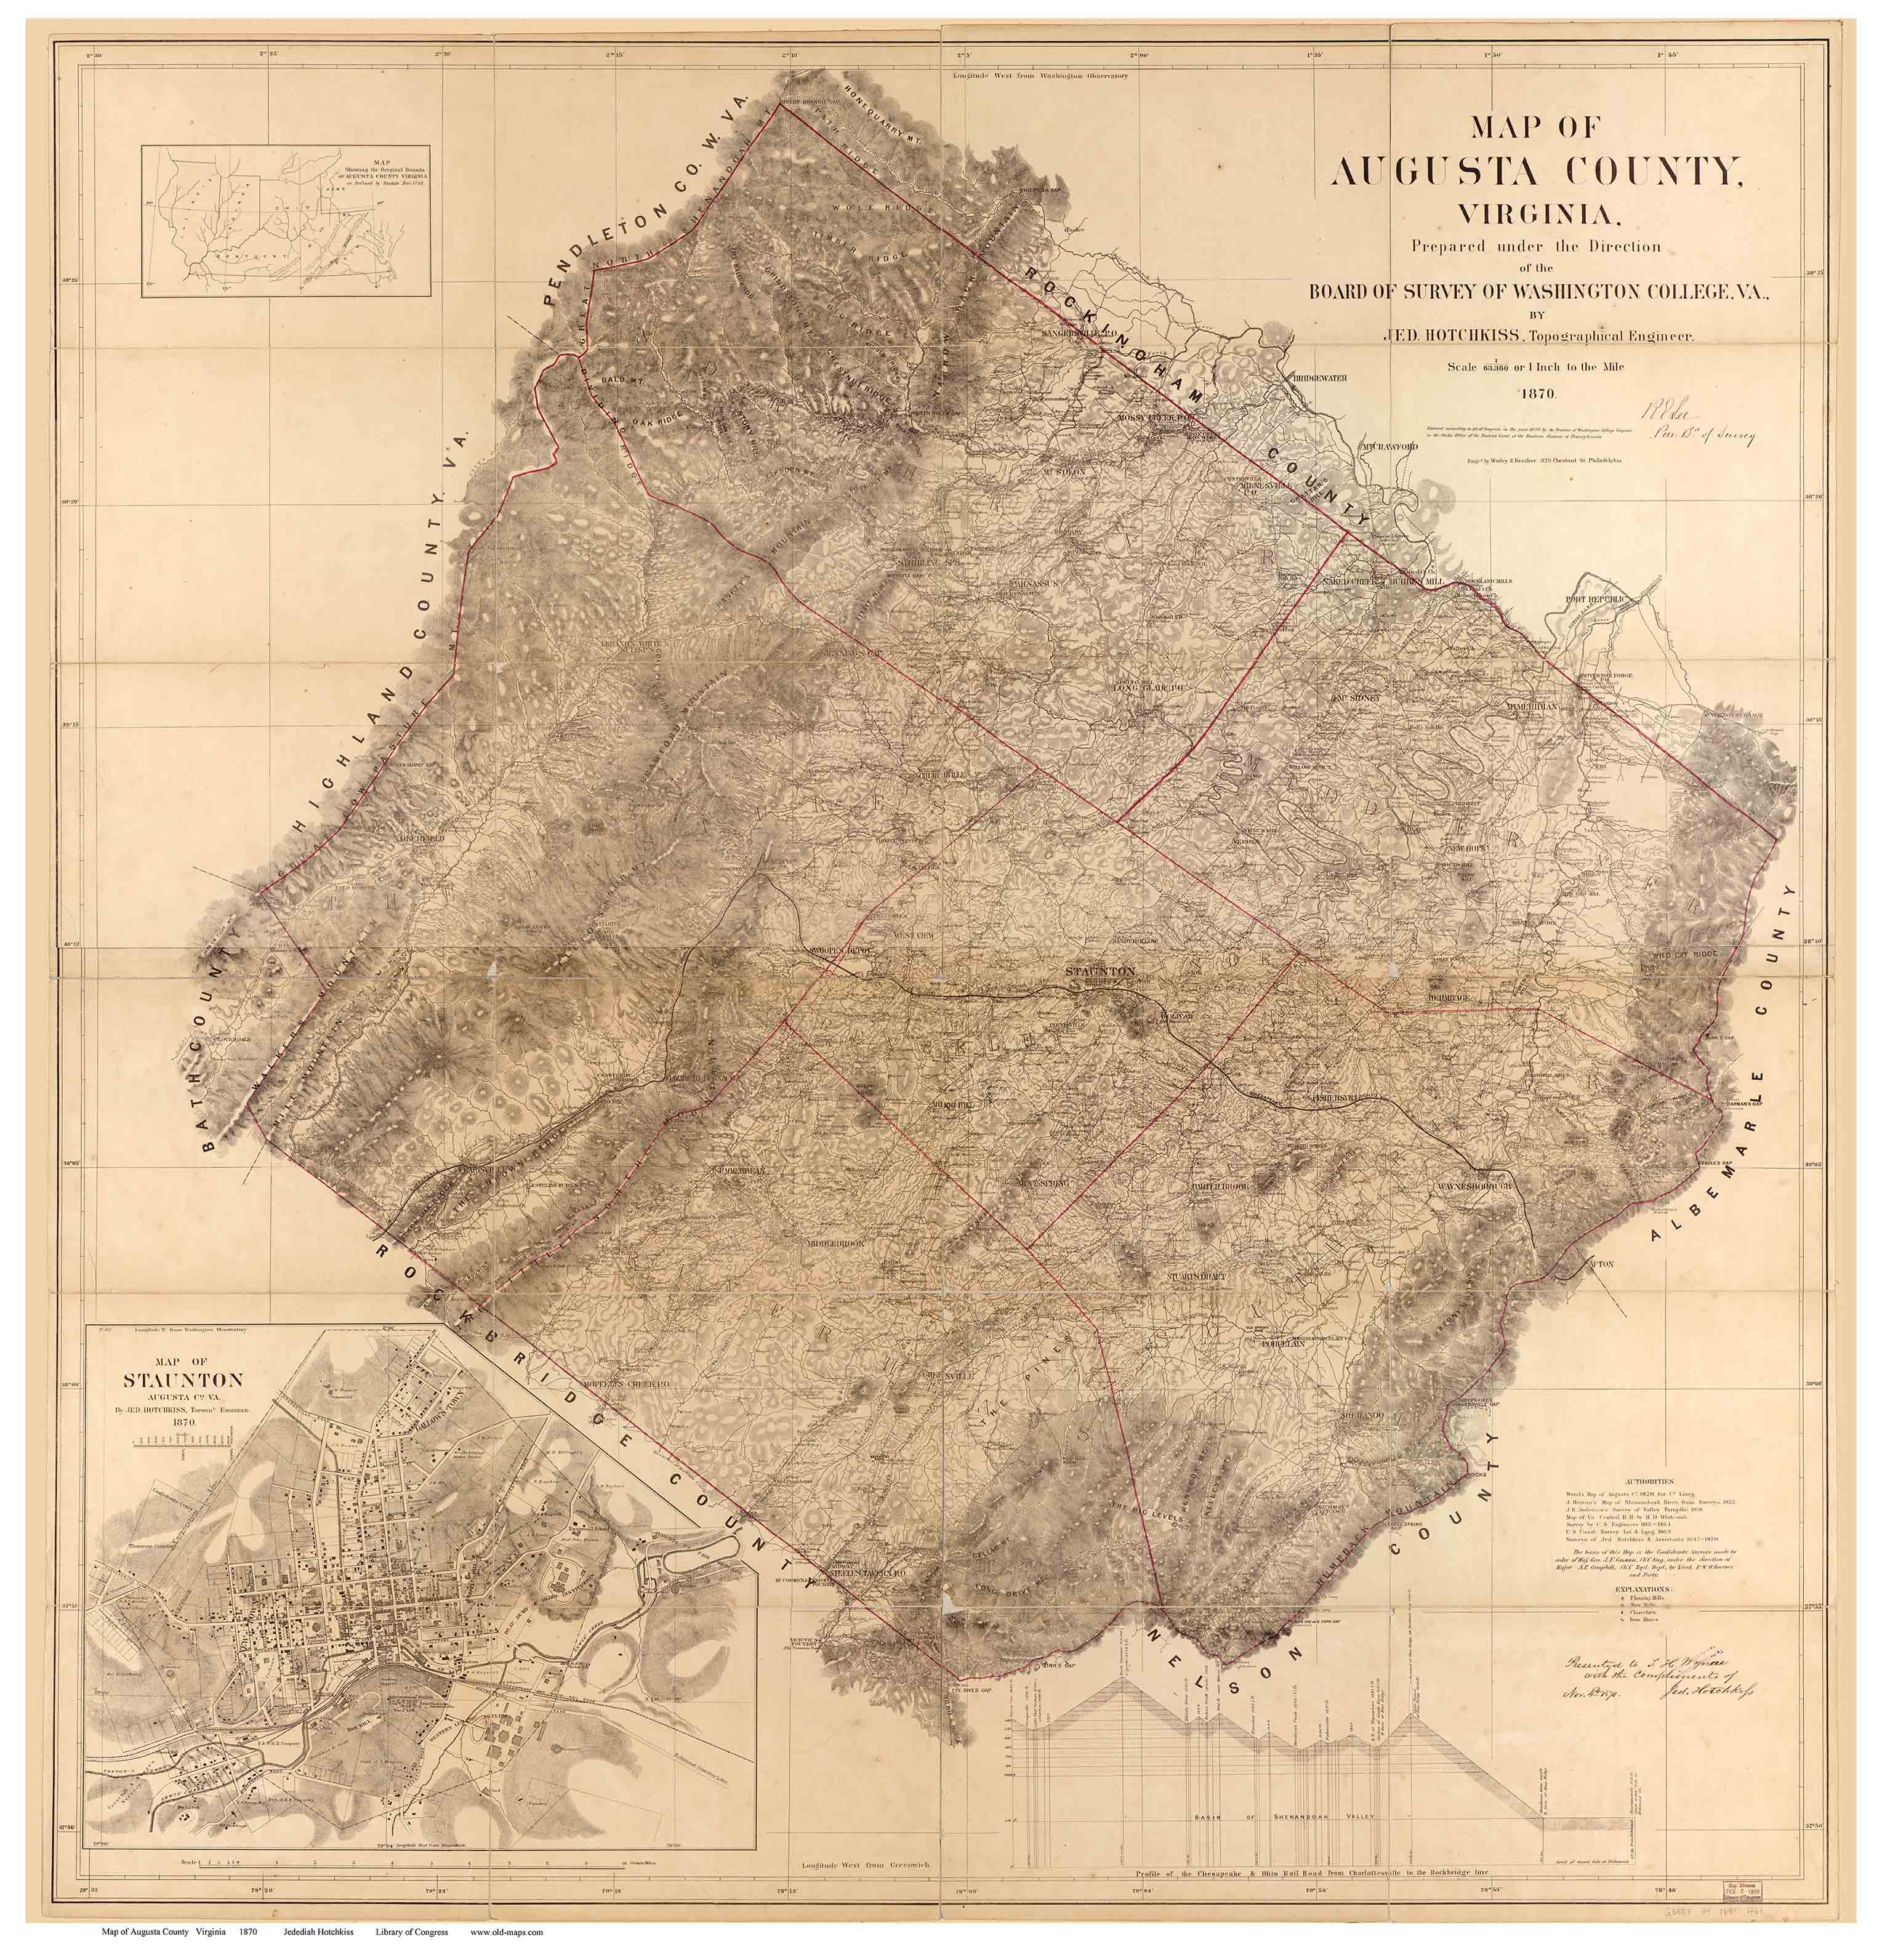 Augusta County Virginia 1870 Old Map Reprint OLD MAPS